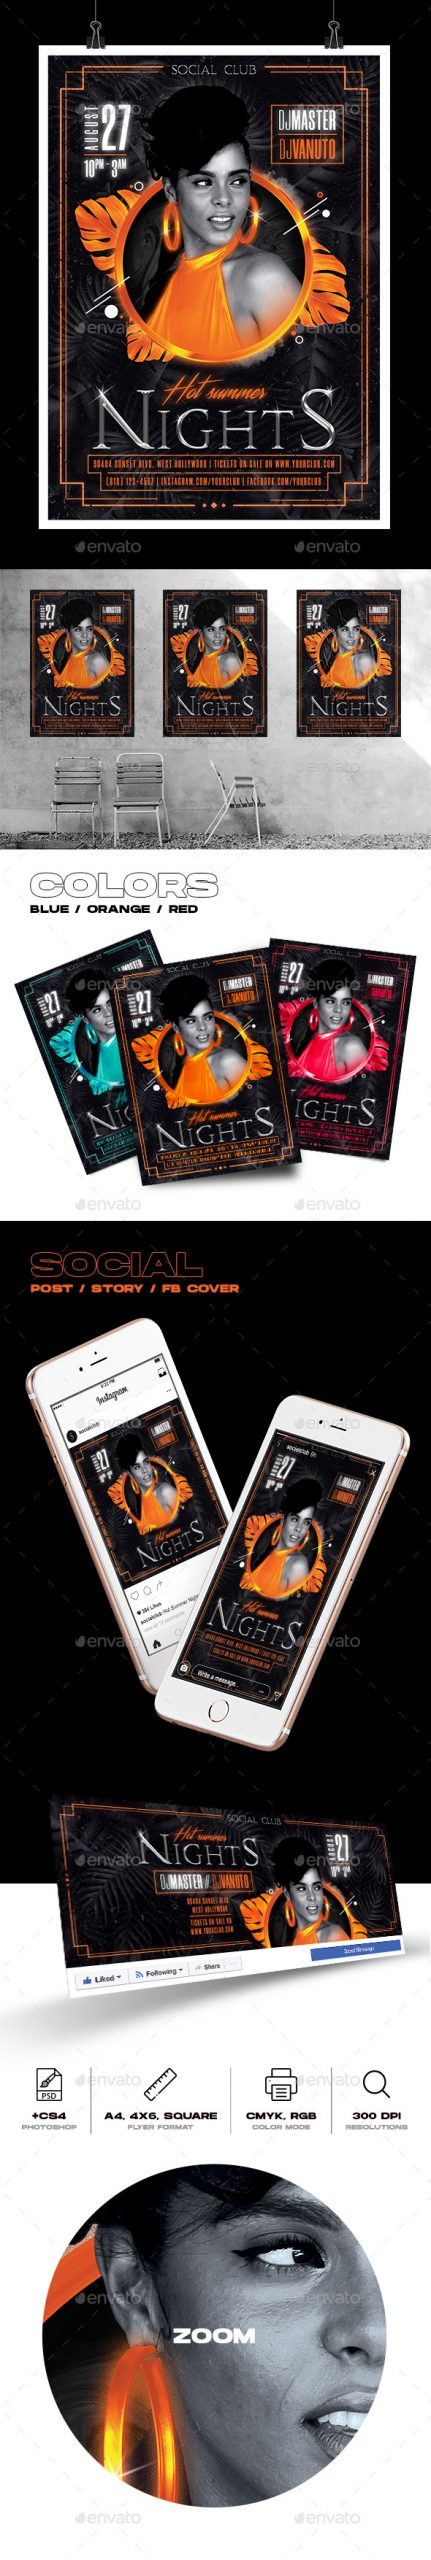 Flyers PSD – Sizzling Summer season Nights Celebration Flyer – Download